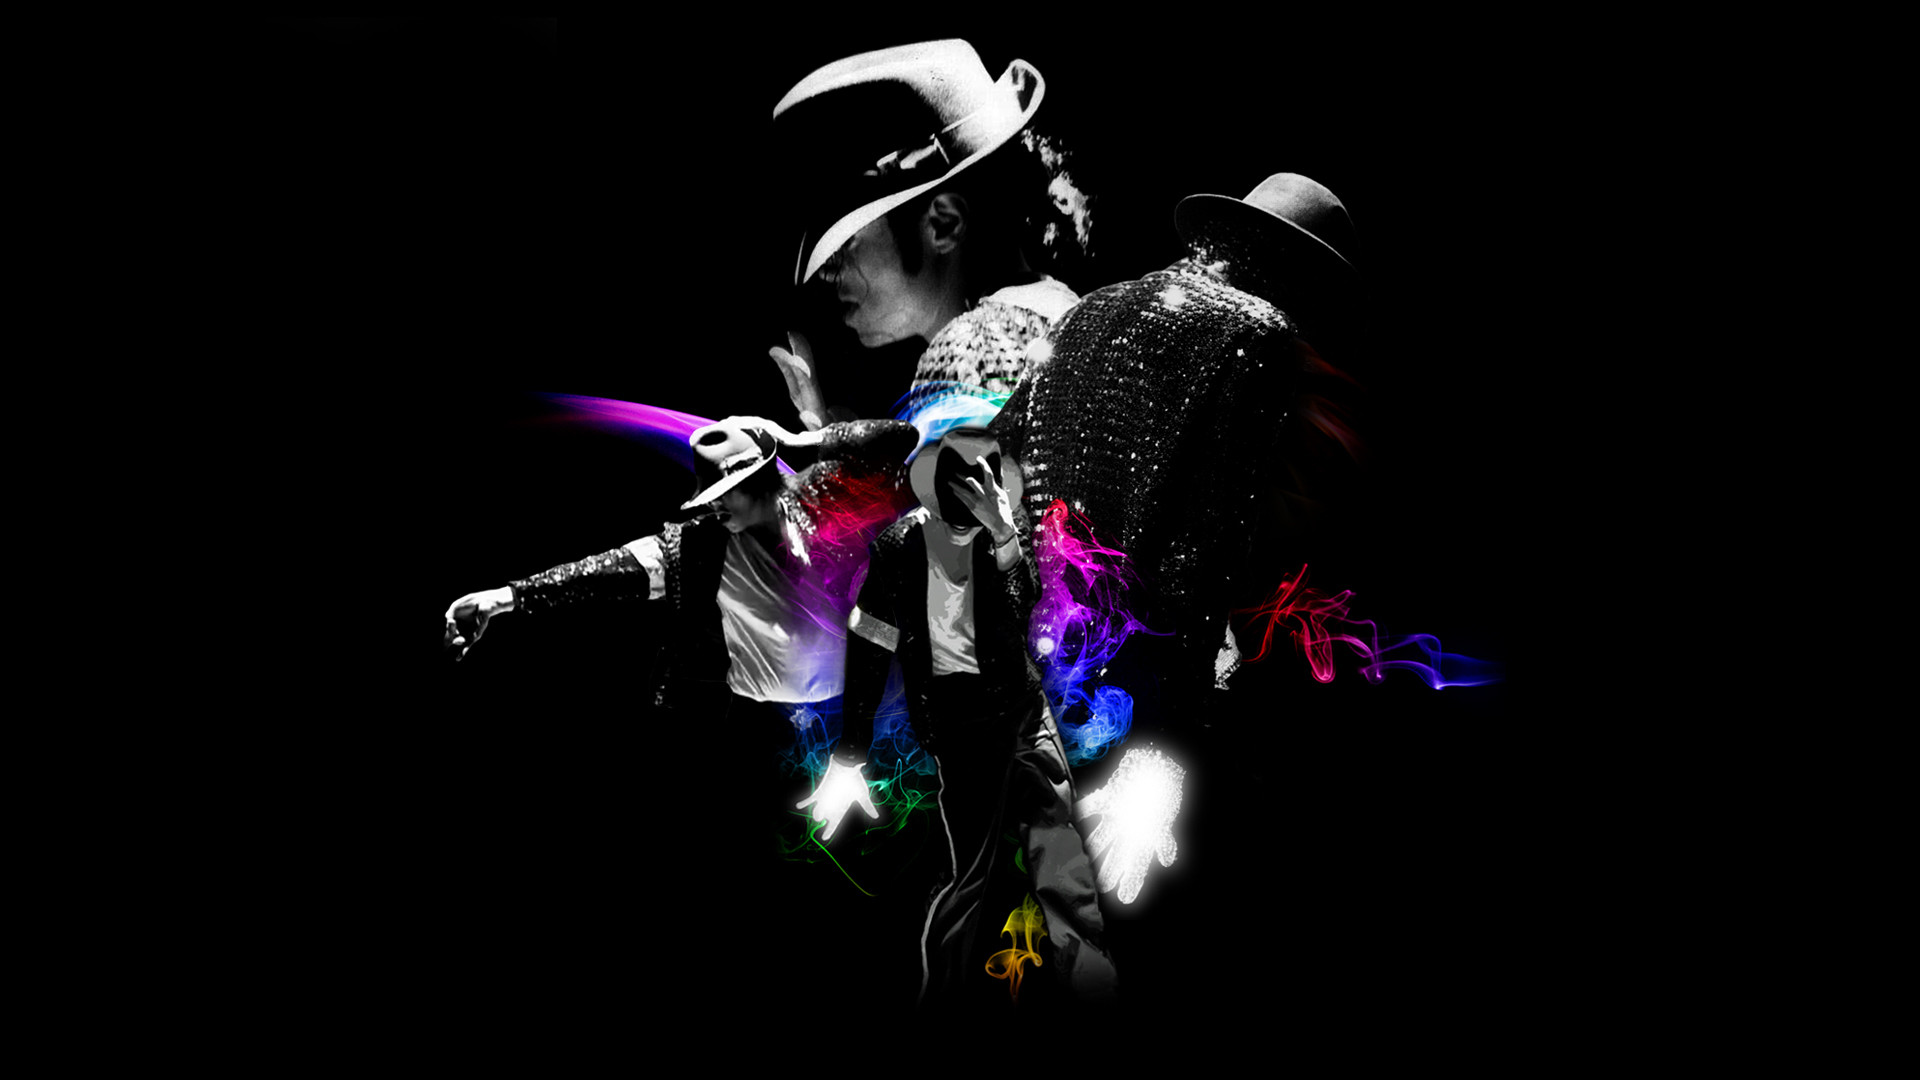 Michael Jackson Moonwalk Wallpaper High Definition Festival 1920x1080